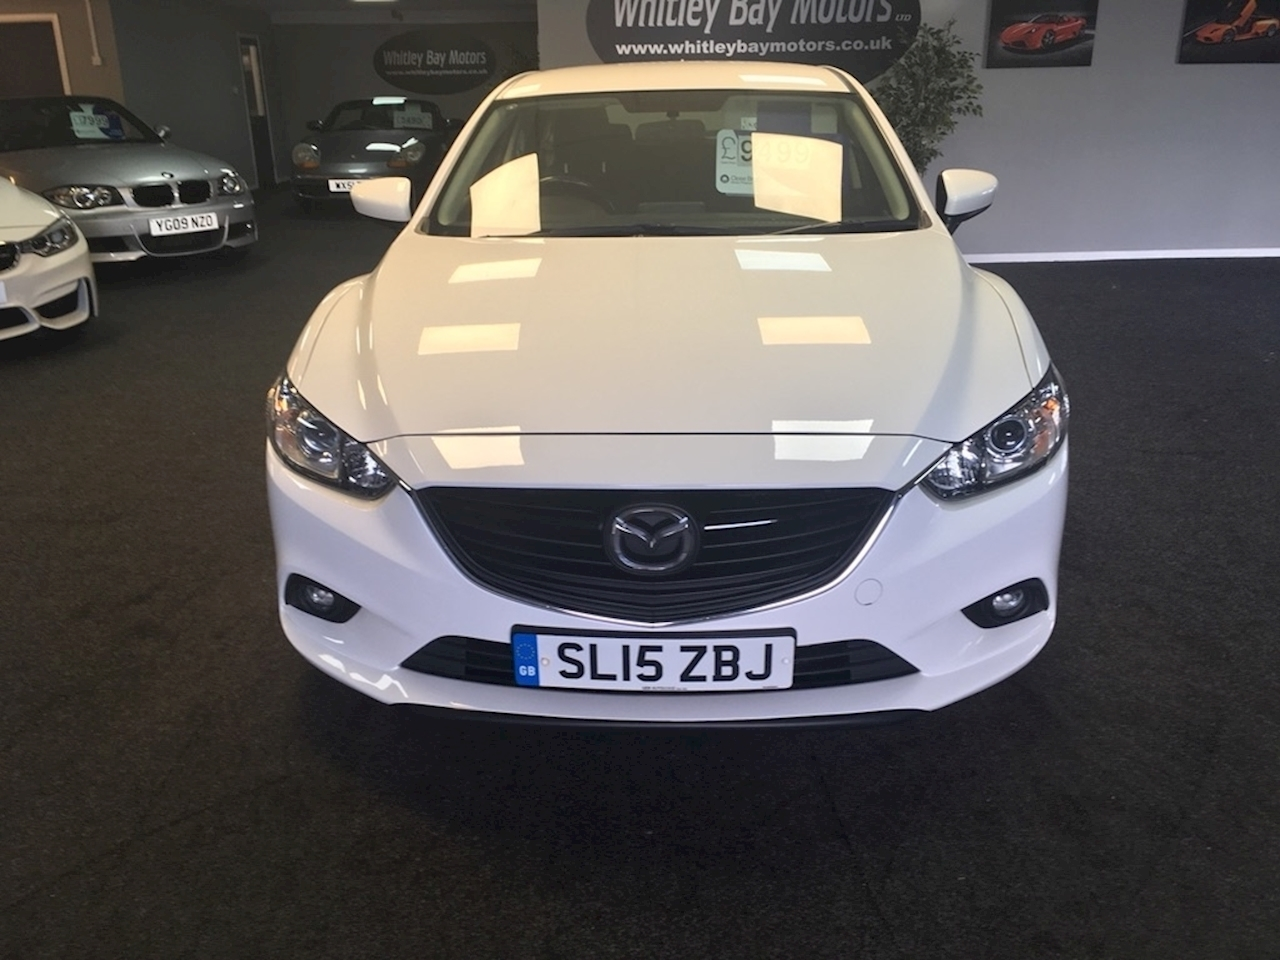 Used 2015 Mazda Mazda 6 D Se Nav Estate 2.2 Manual Diesel For Sale in Tyne  And Wear | Whitley Bay Motors